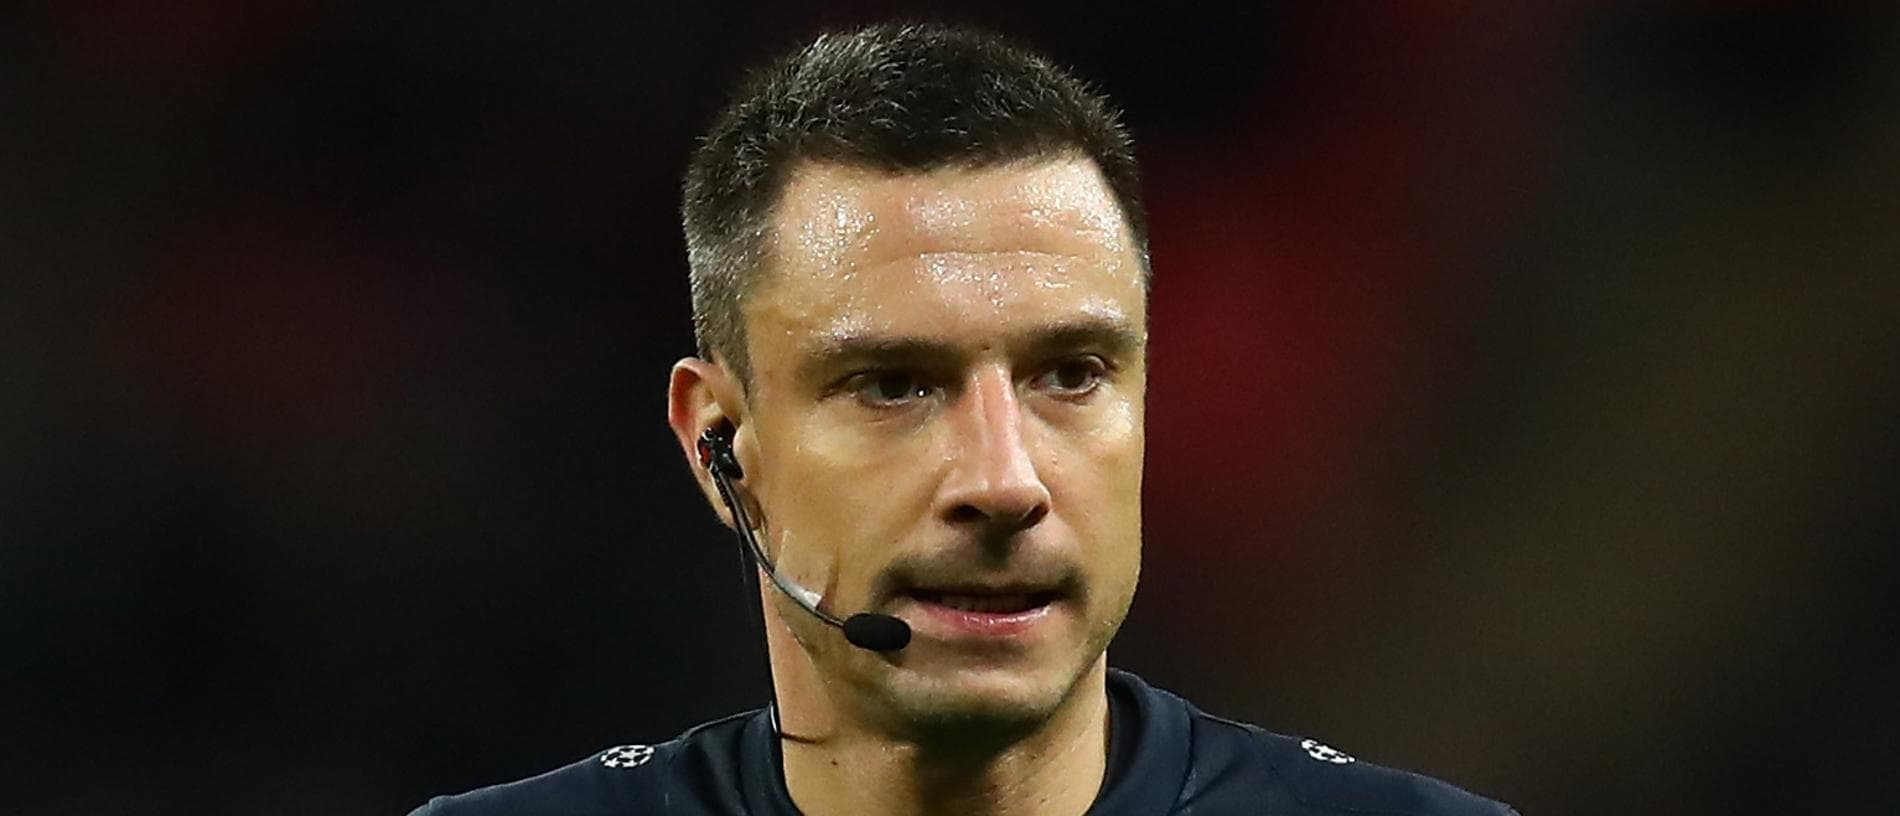 LONDON, ENGLAND - DECEMBER 06:  Referee, Slavko Vincic is seen during the UEFA Champions League group H match between Tottenham Hotspur and APOEL Nikosia at Wembley Stadium on December 6, 2017 in London, United Kingdom.  (Photo by Julian Finney/Getty Images)